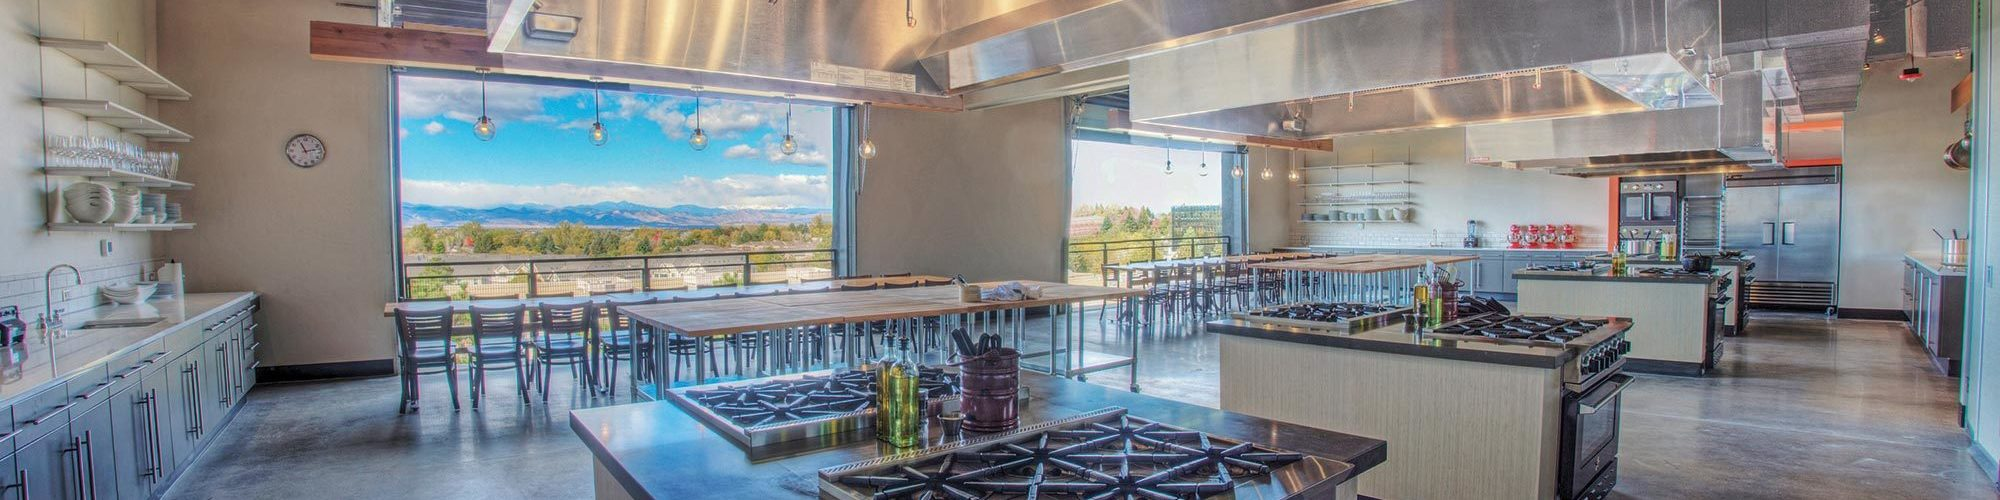 private cooking events denver dtc uncorked kitchen wine bar